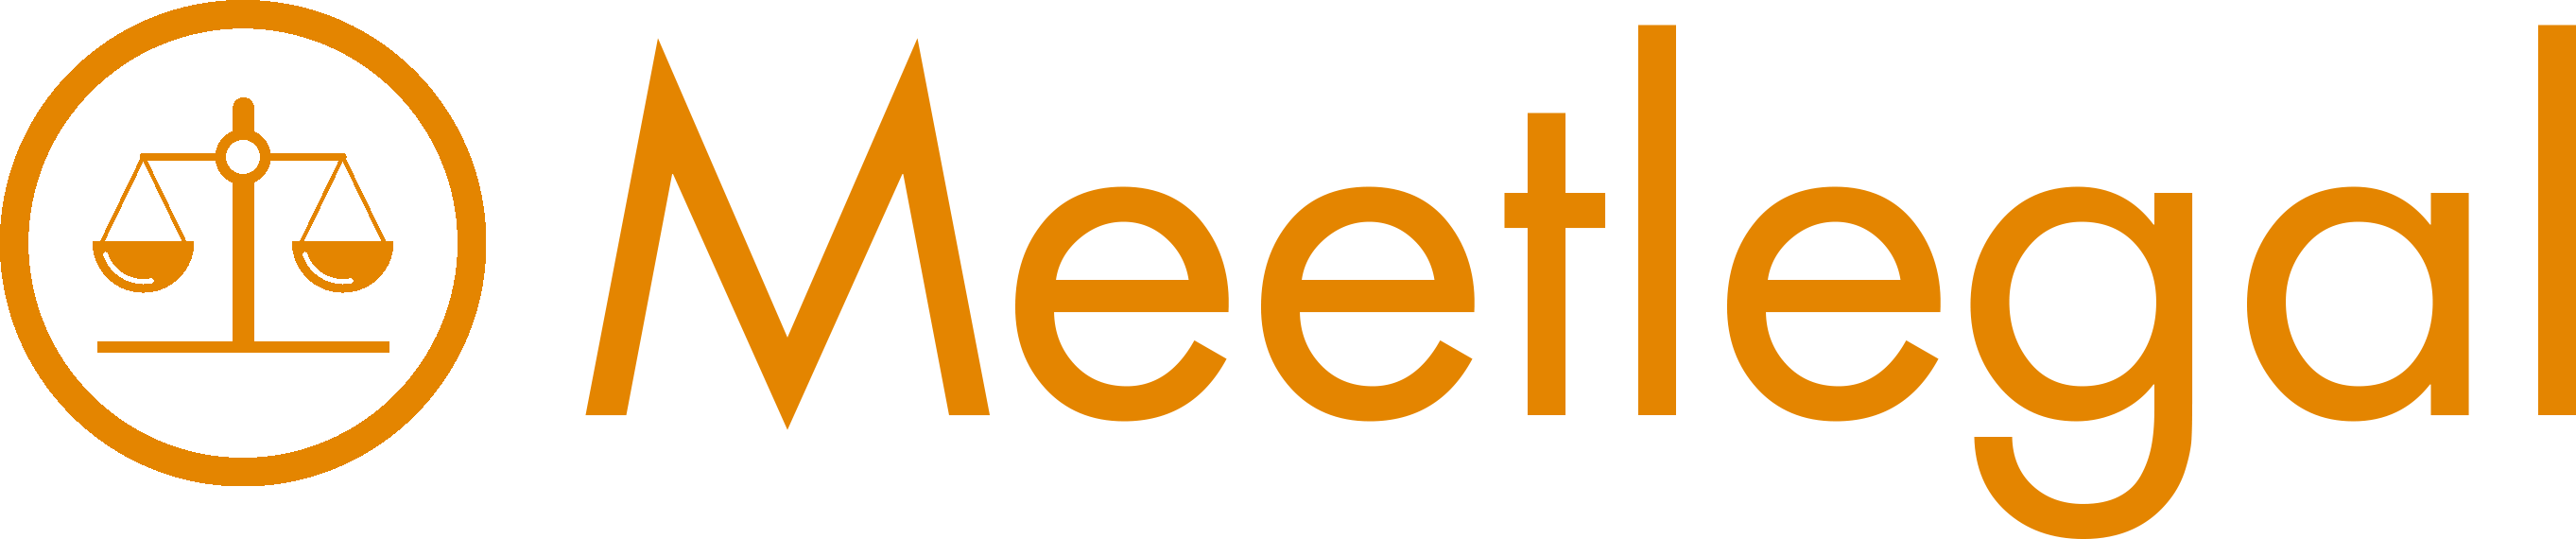 Meetlegal